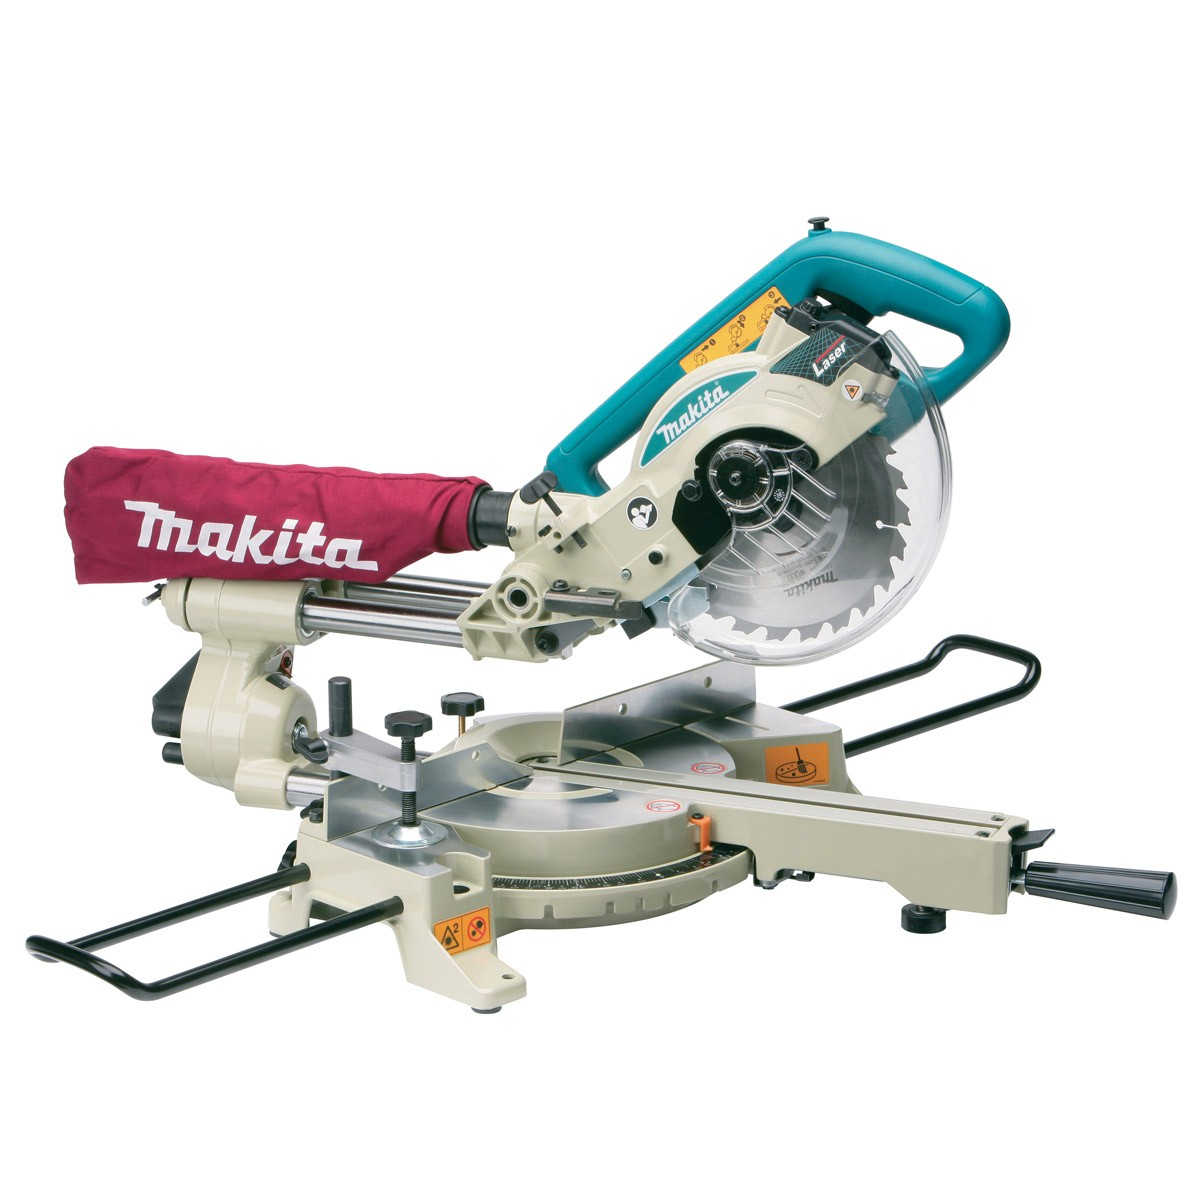 Makita LS0714 190mm Slide Compound Mitre Saw 110v